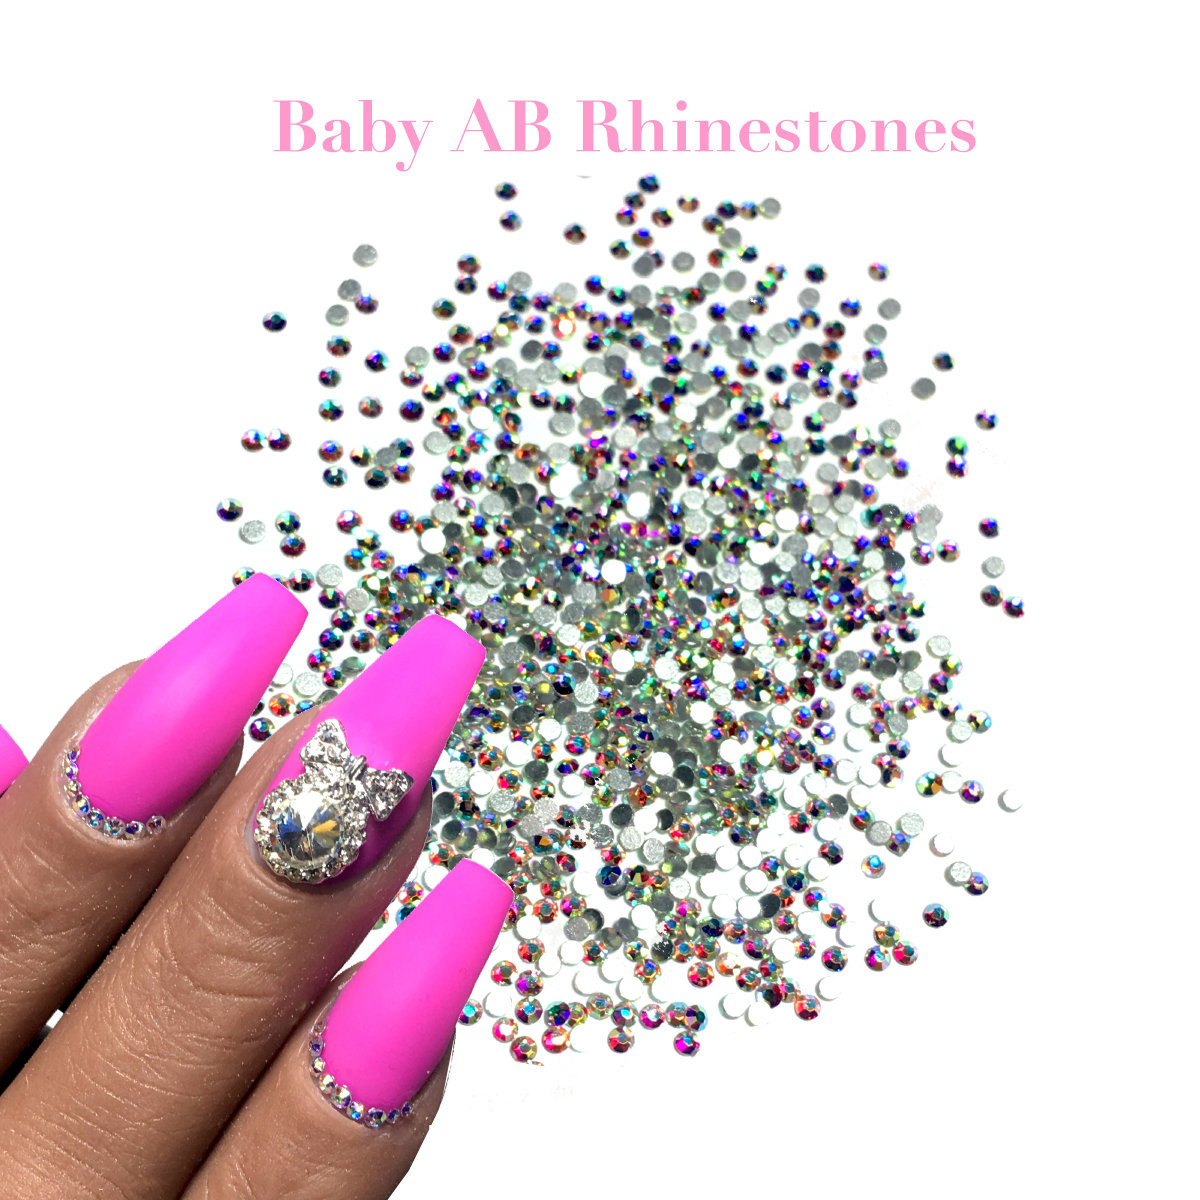 BABY AB HIGH QUALITY SIZE 1.5mm RHINESTONES 1440ct